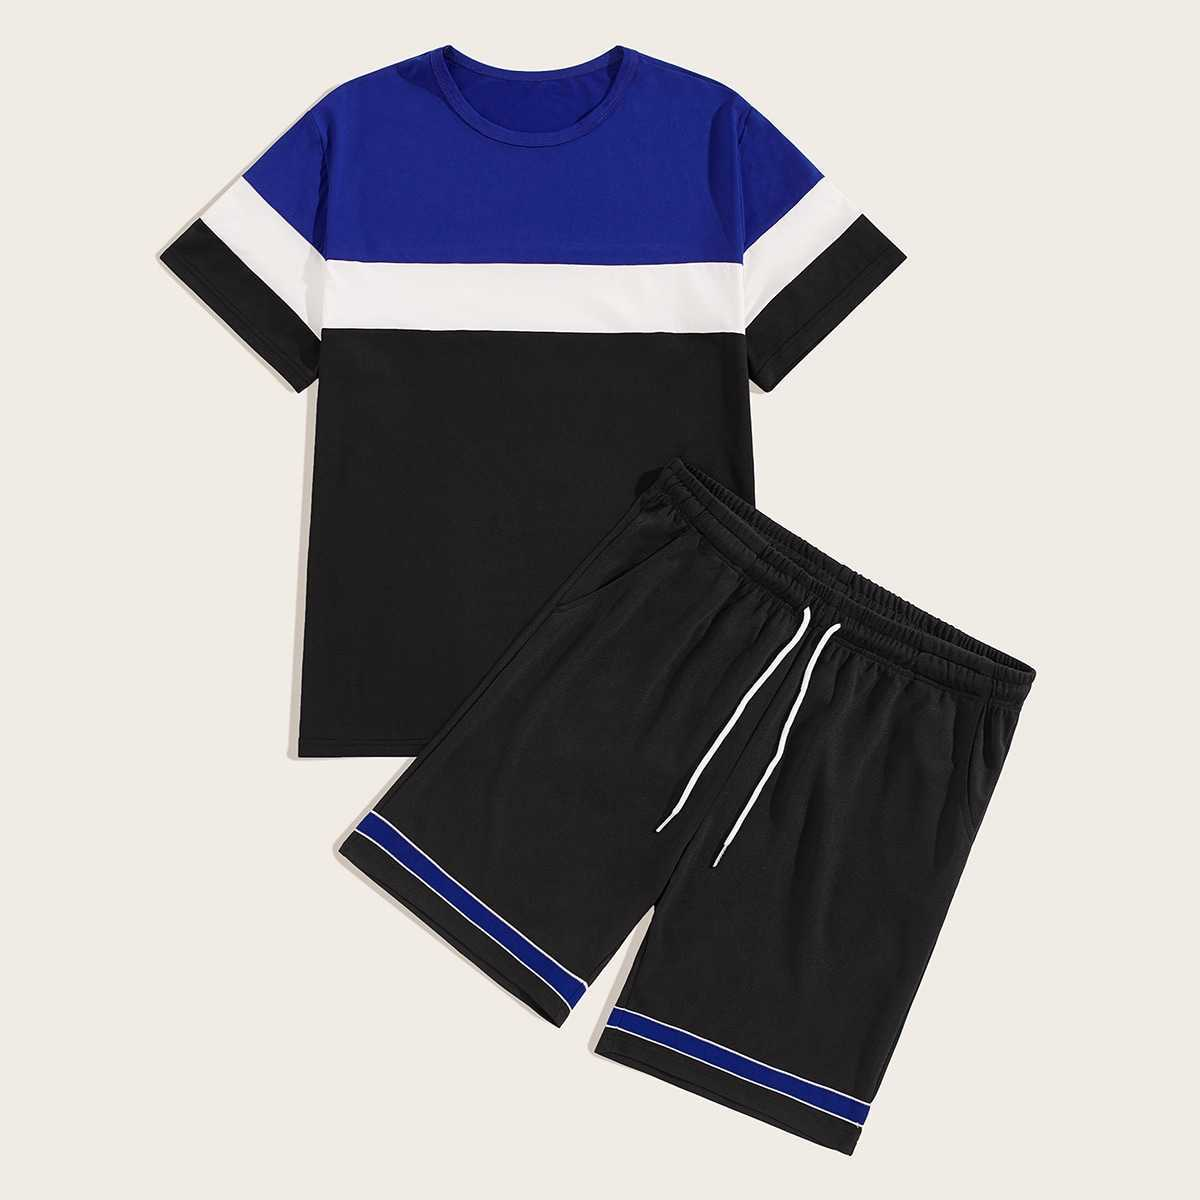 Guys Cut And Sew Tee With Drawstring Waist Shorts in Multicolor by ROMWE on GOOFASH